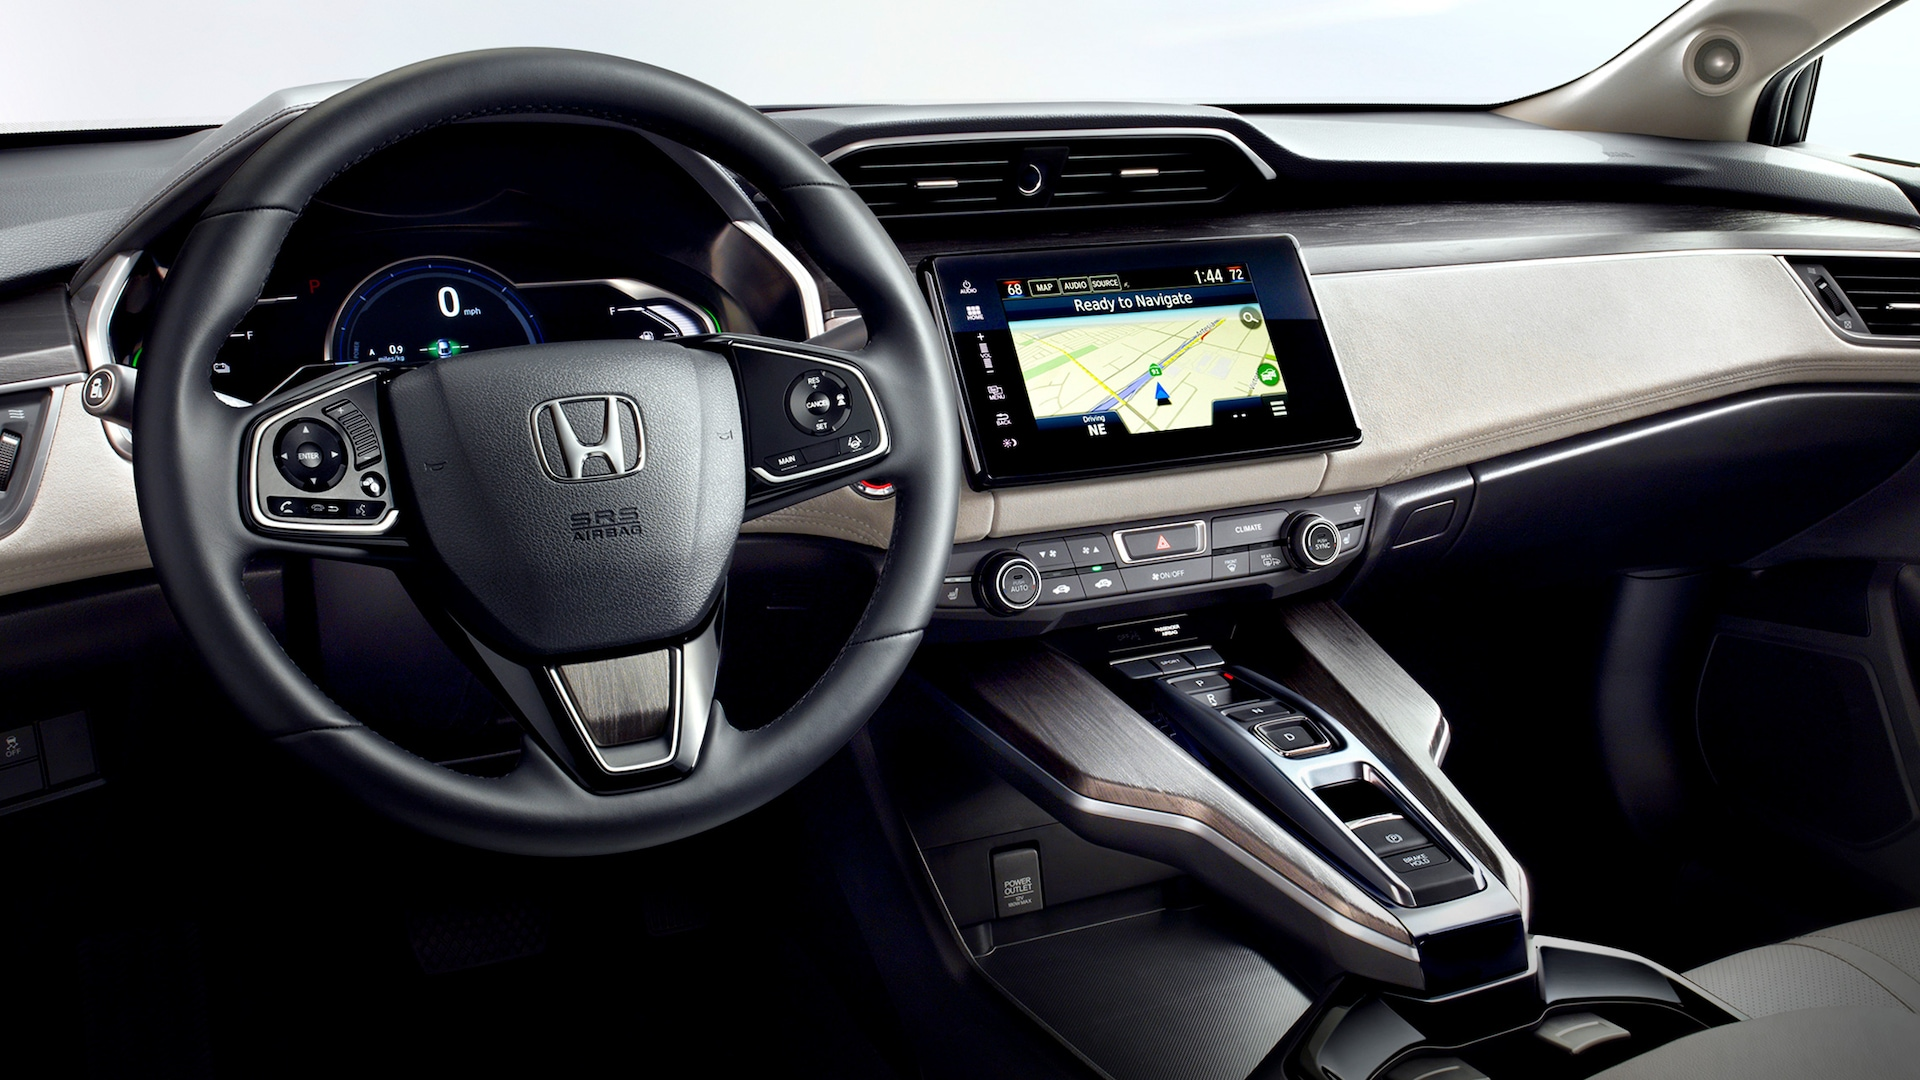 Detail of the steering wheel and interior consoles in the 2020 Honda Clarity Fuel Cell.